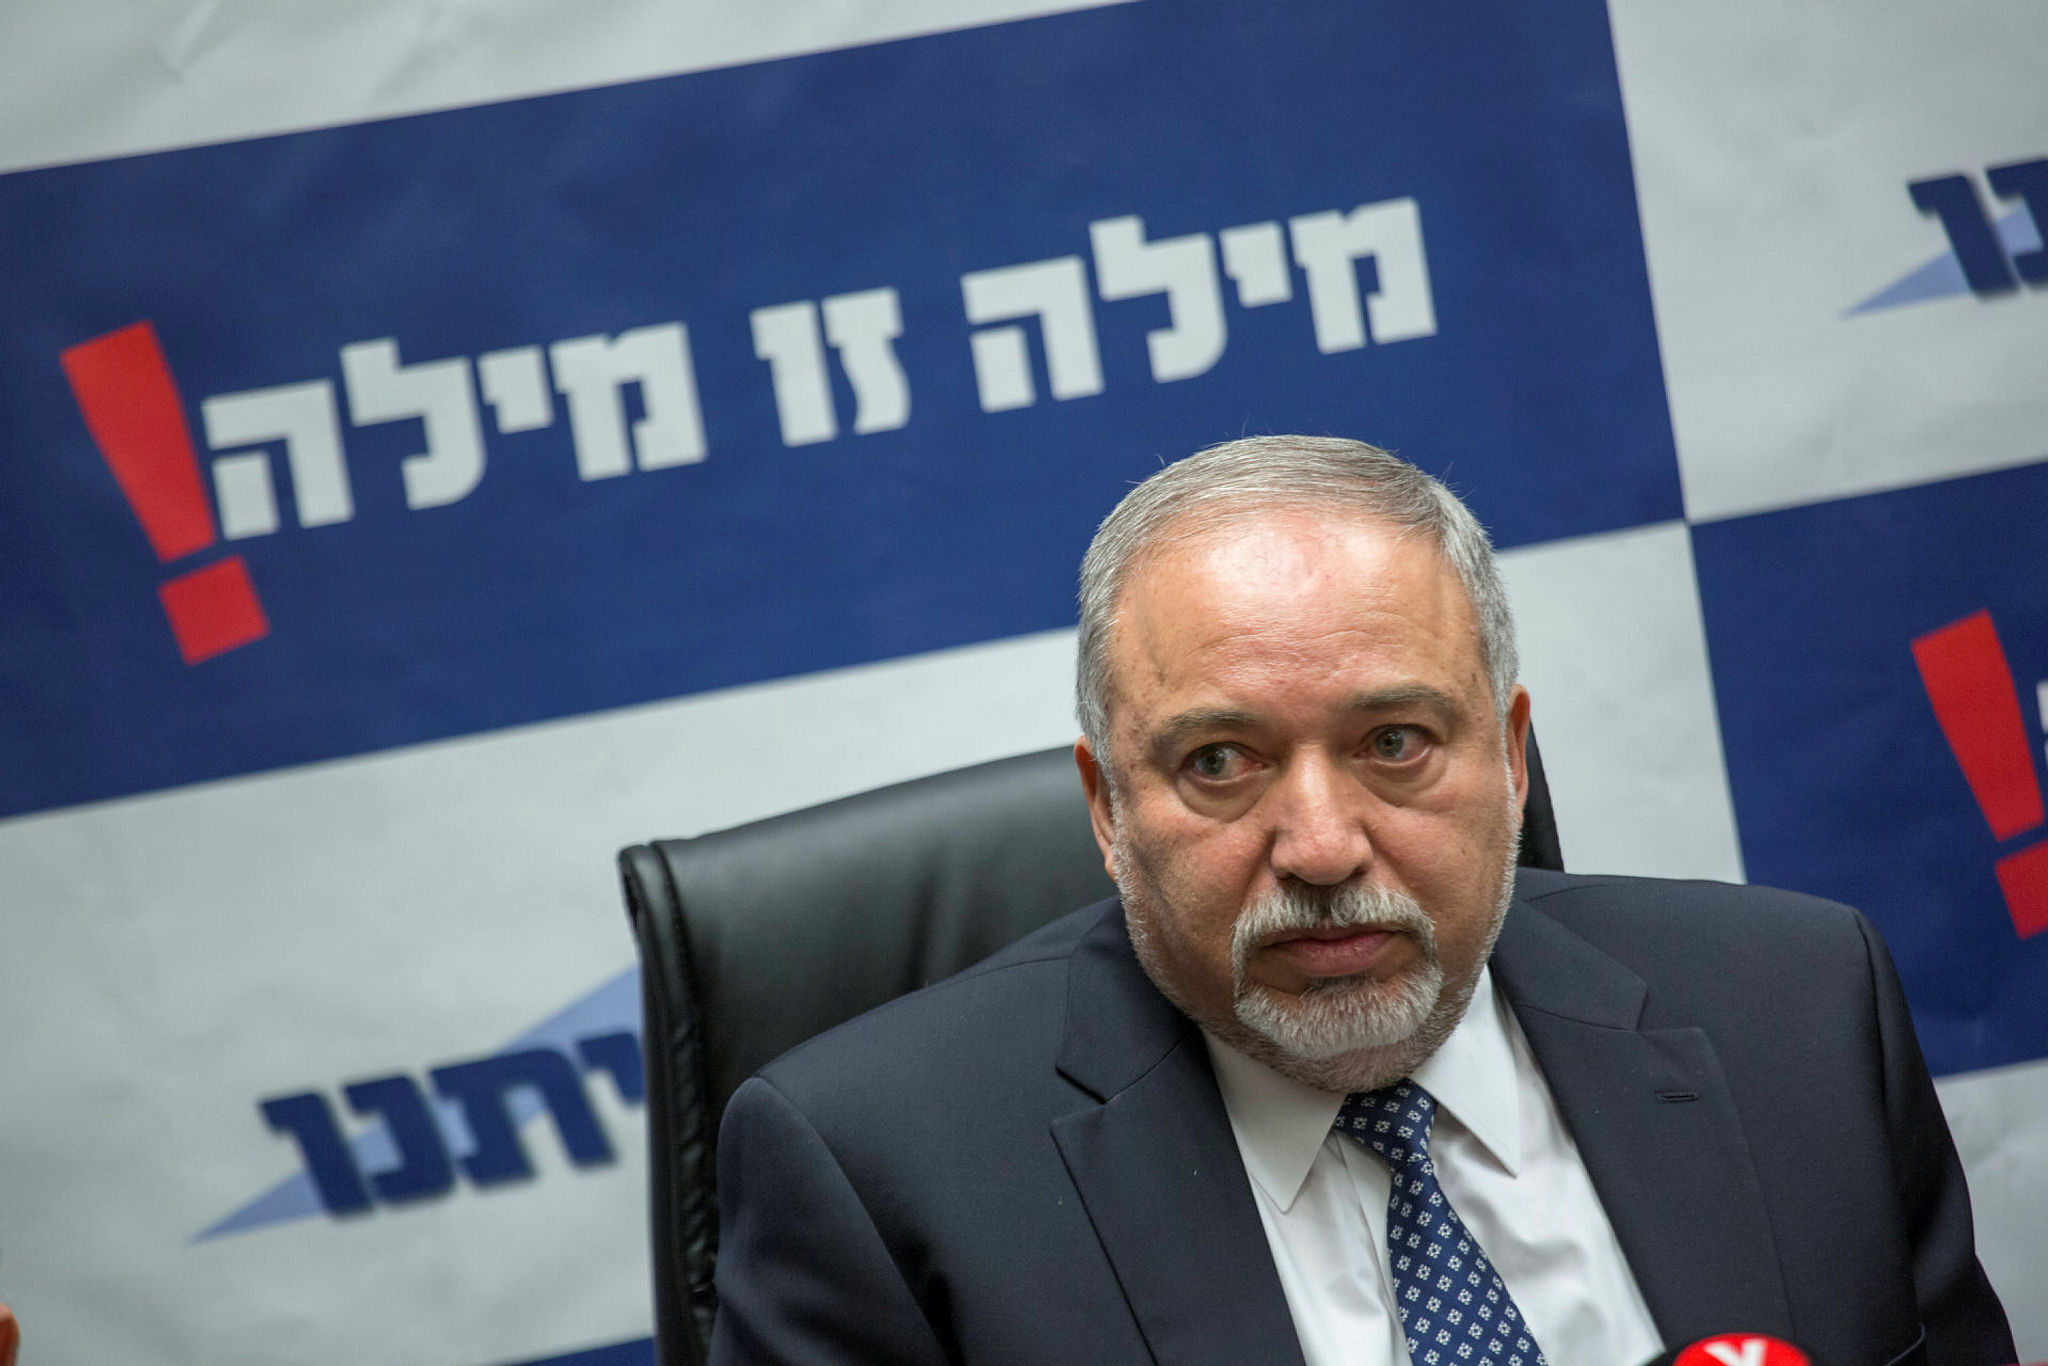 Avigdor Lieberman, Defense Minister of Israel